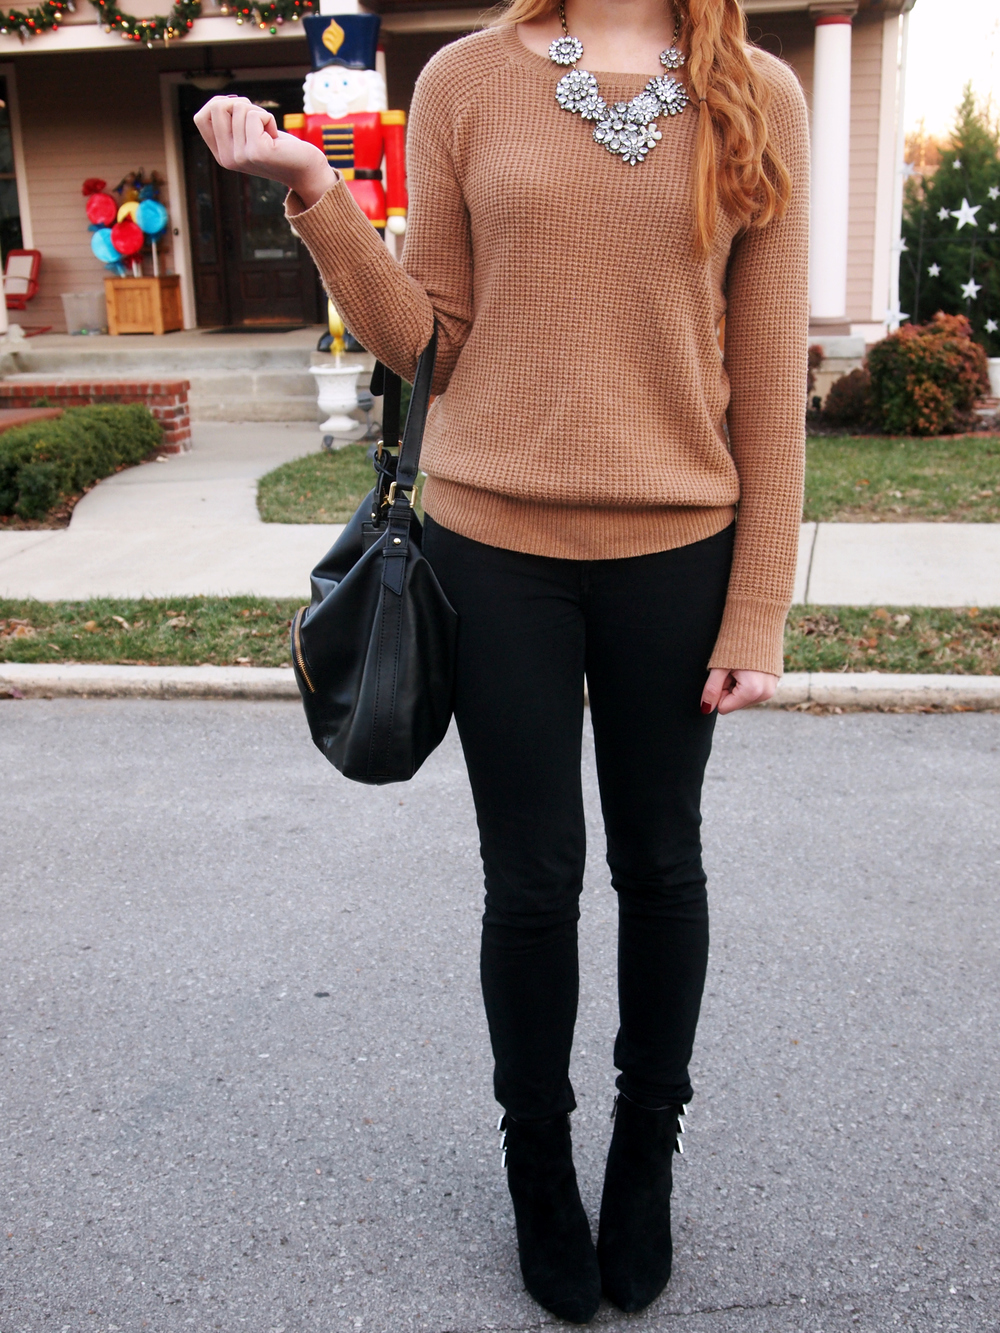 J.Crew sweater, American Eagle leggings, DV by Dolce Vita booties, Etsy bib necklace (similar), The Limited purse